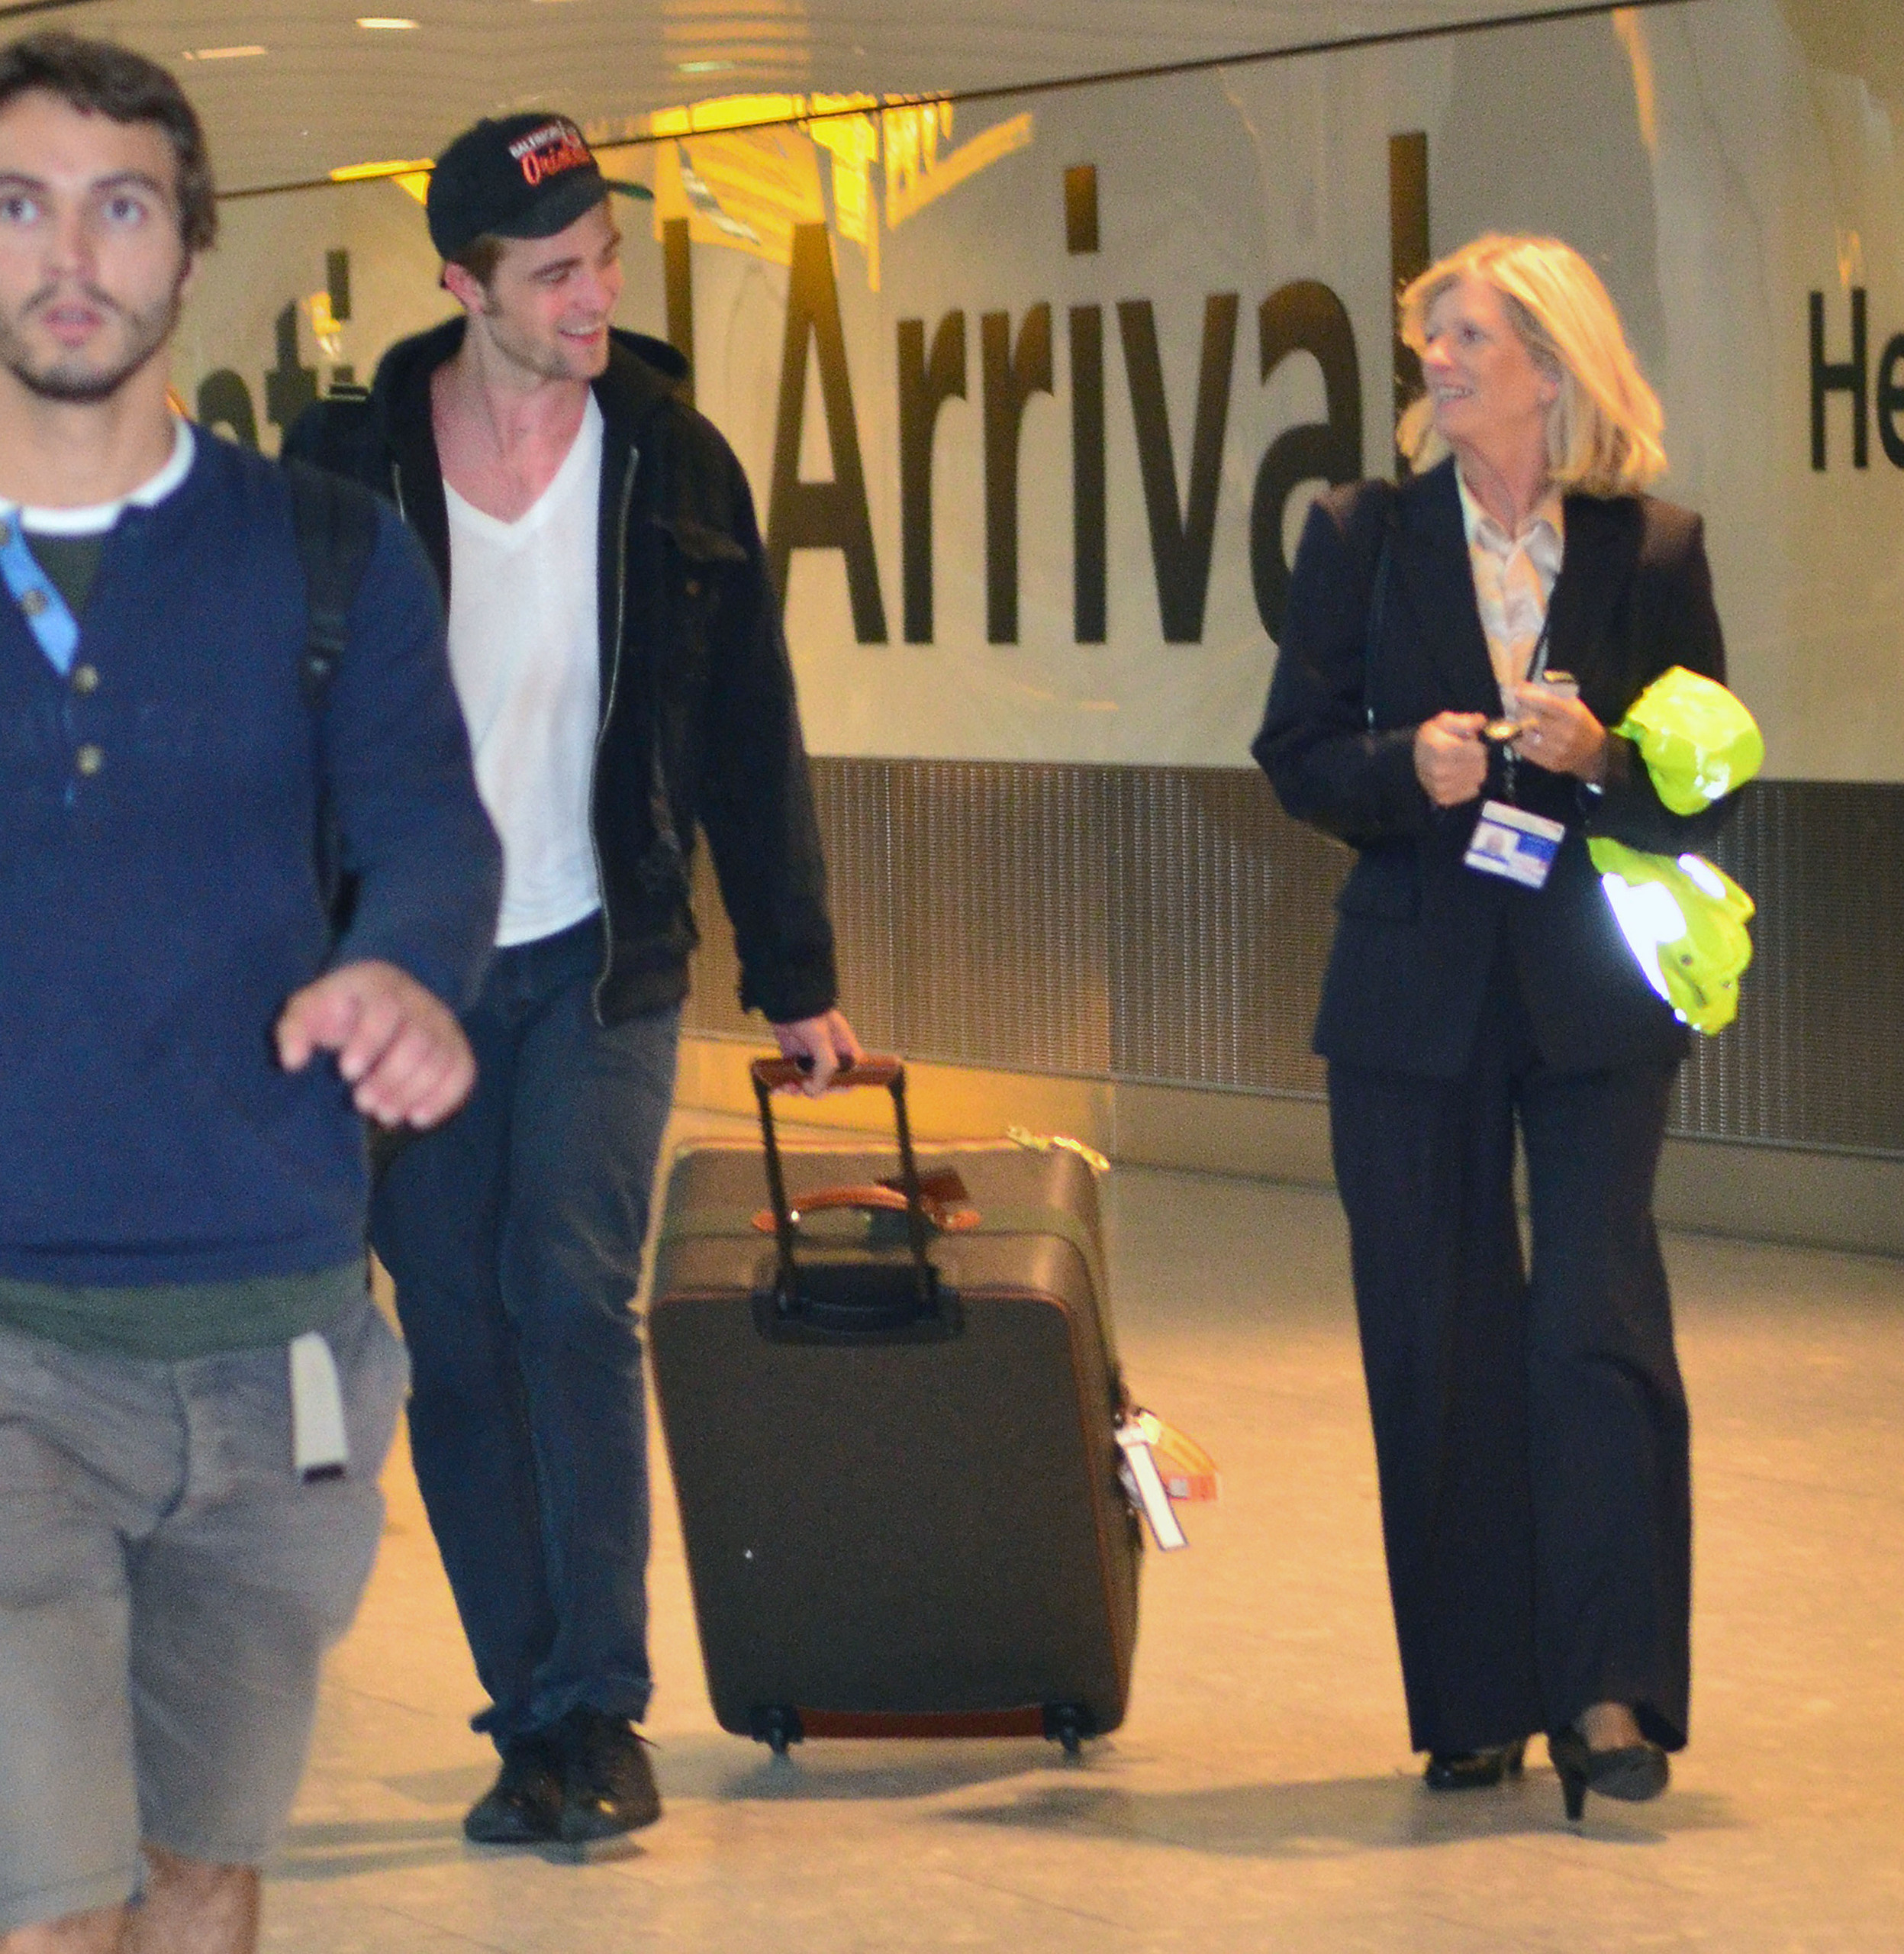 Untagged HQ's Of Robert Pattinson Arriving In Heathrow Airport london (Sept 4th)